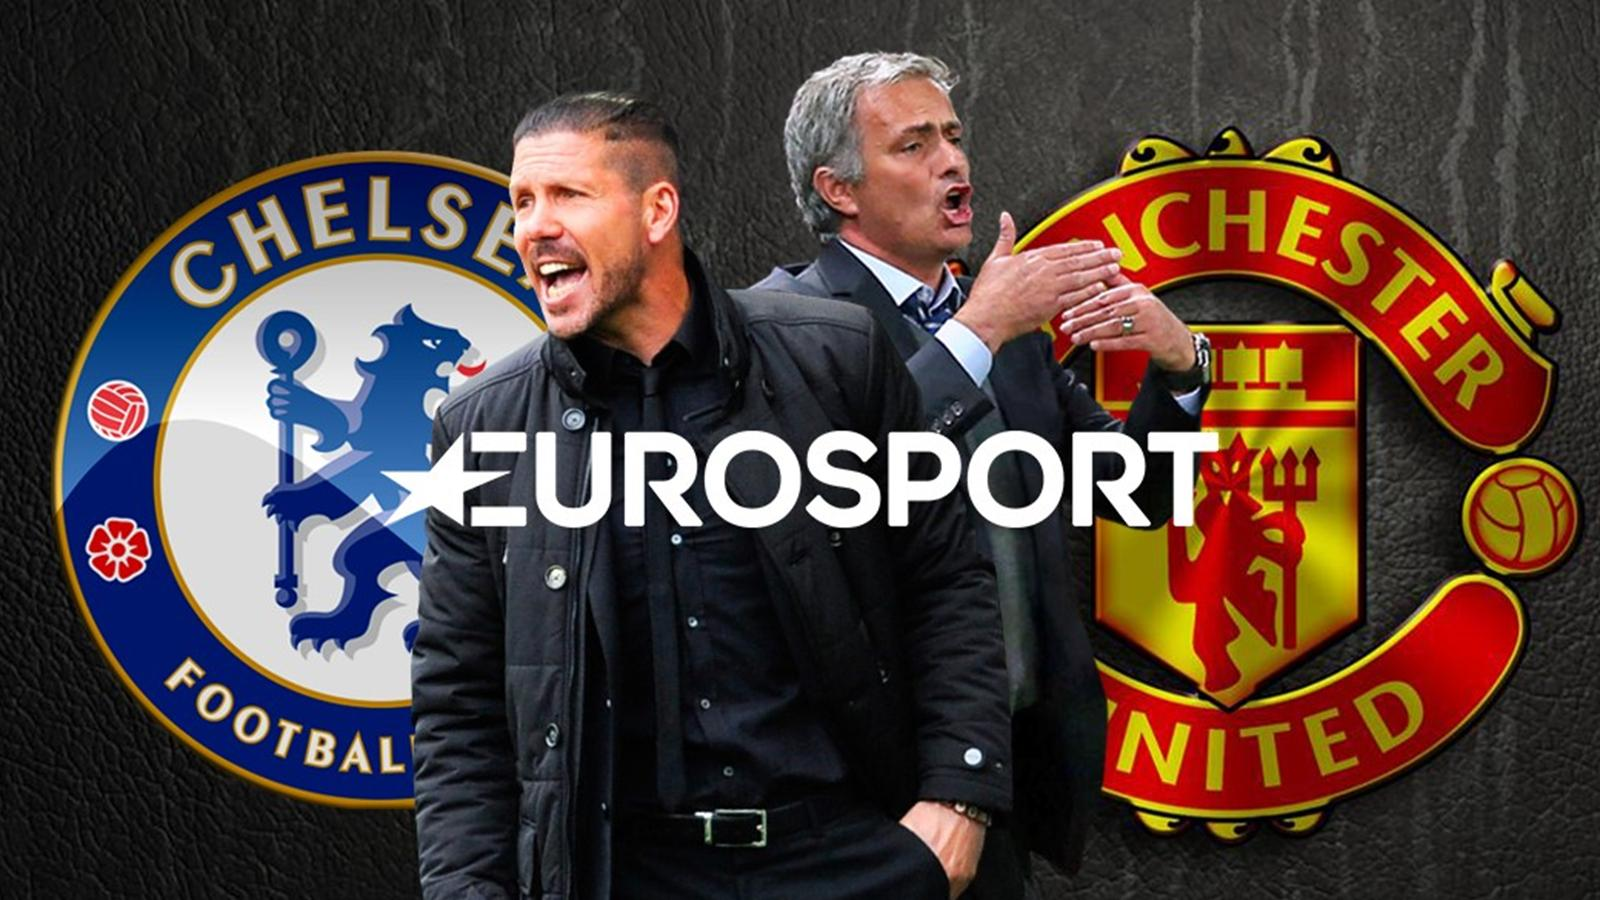 Simeone set for Chelsea as Mourinho heads to Manchester - Euro Papers